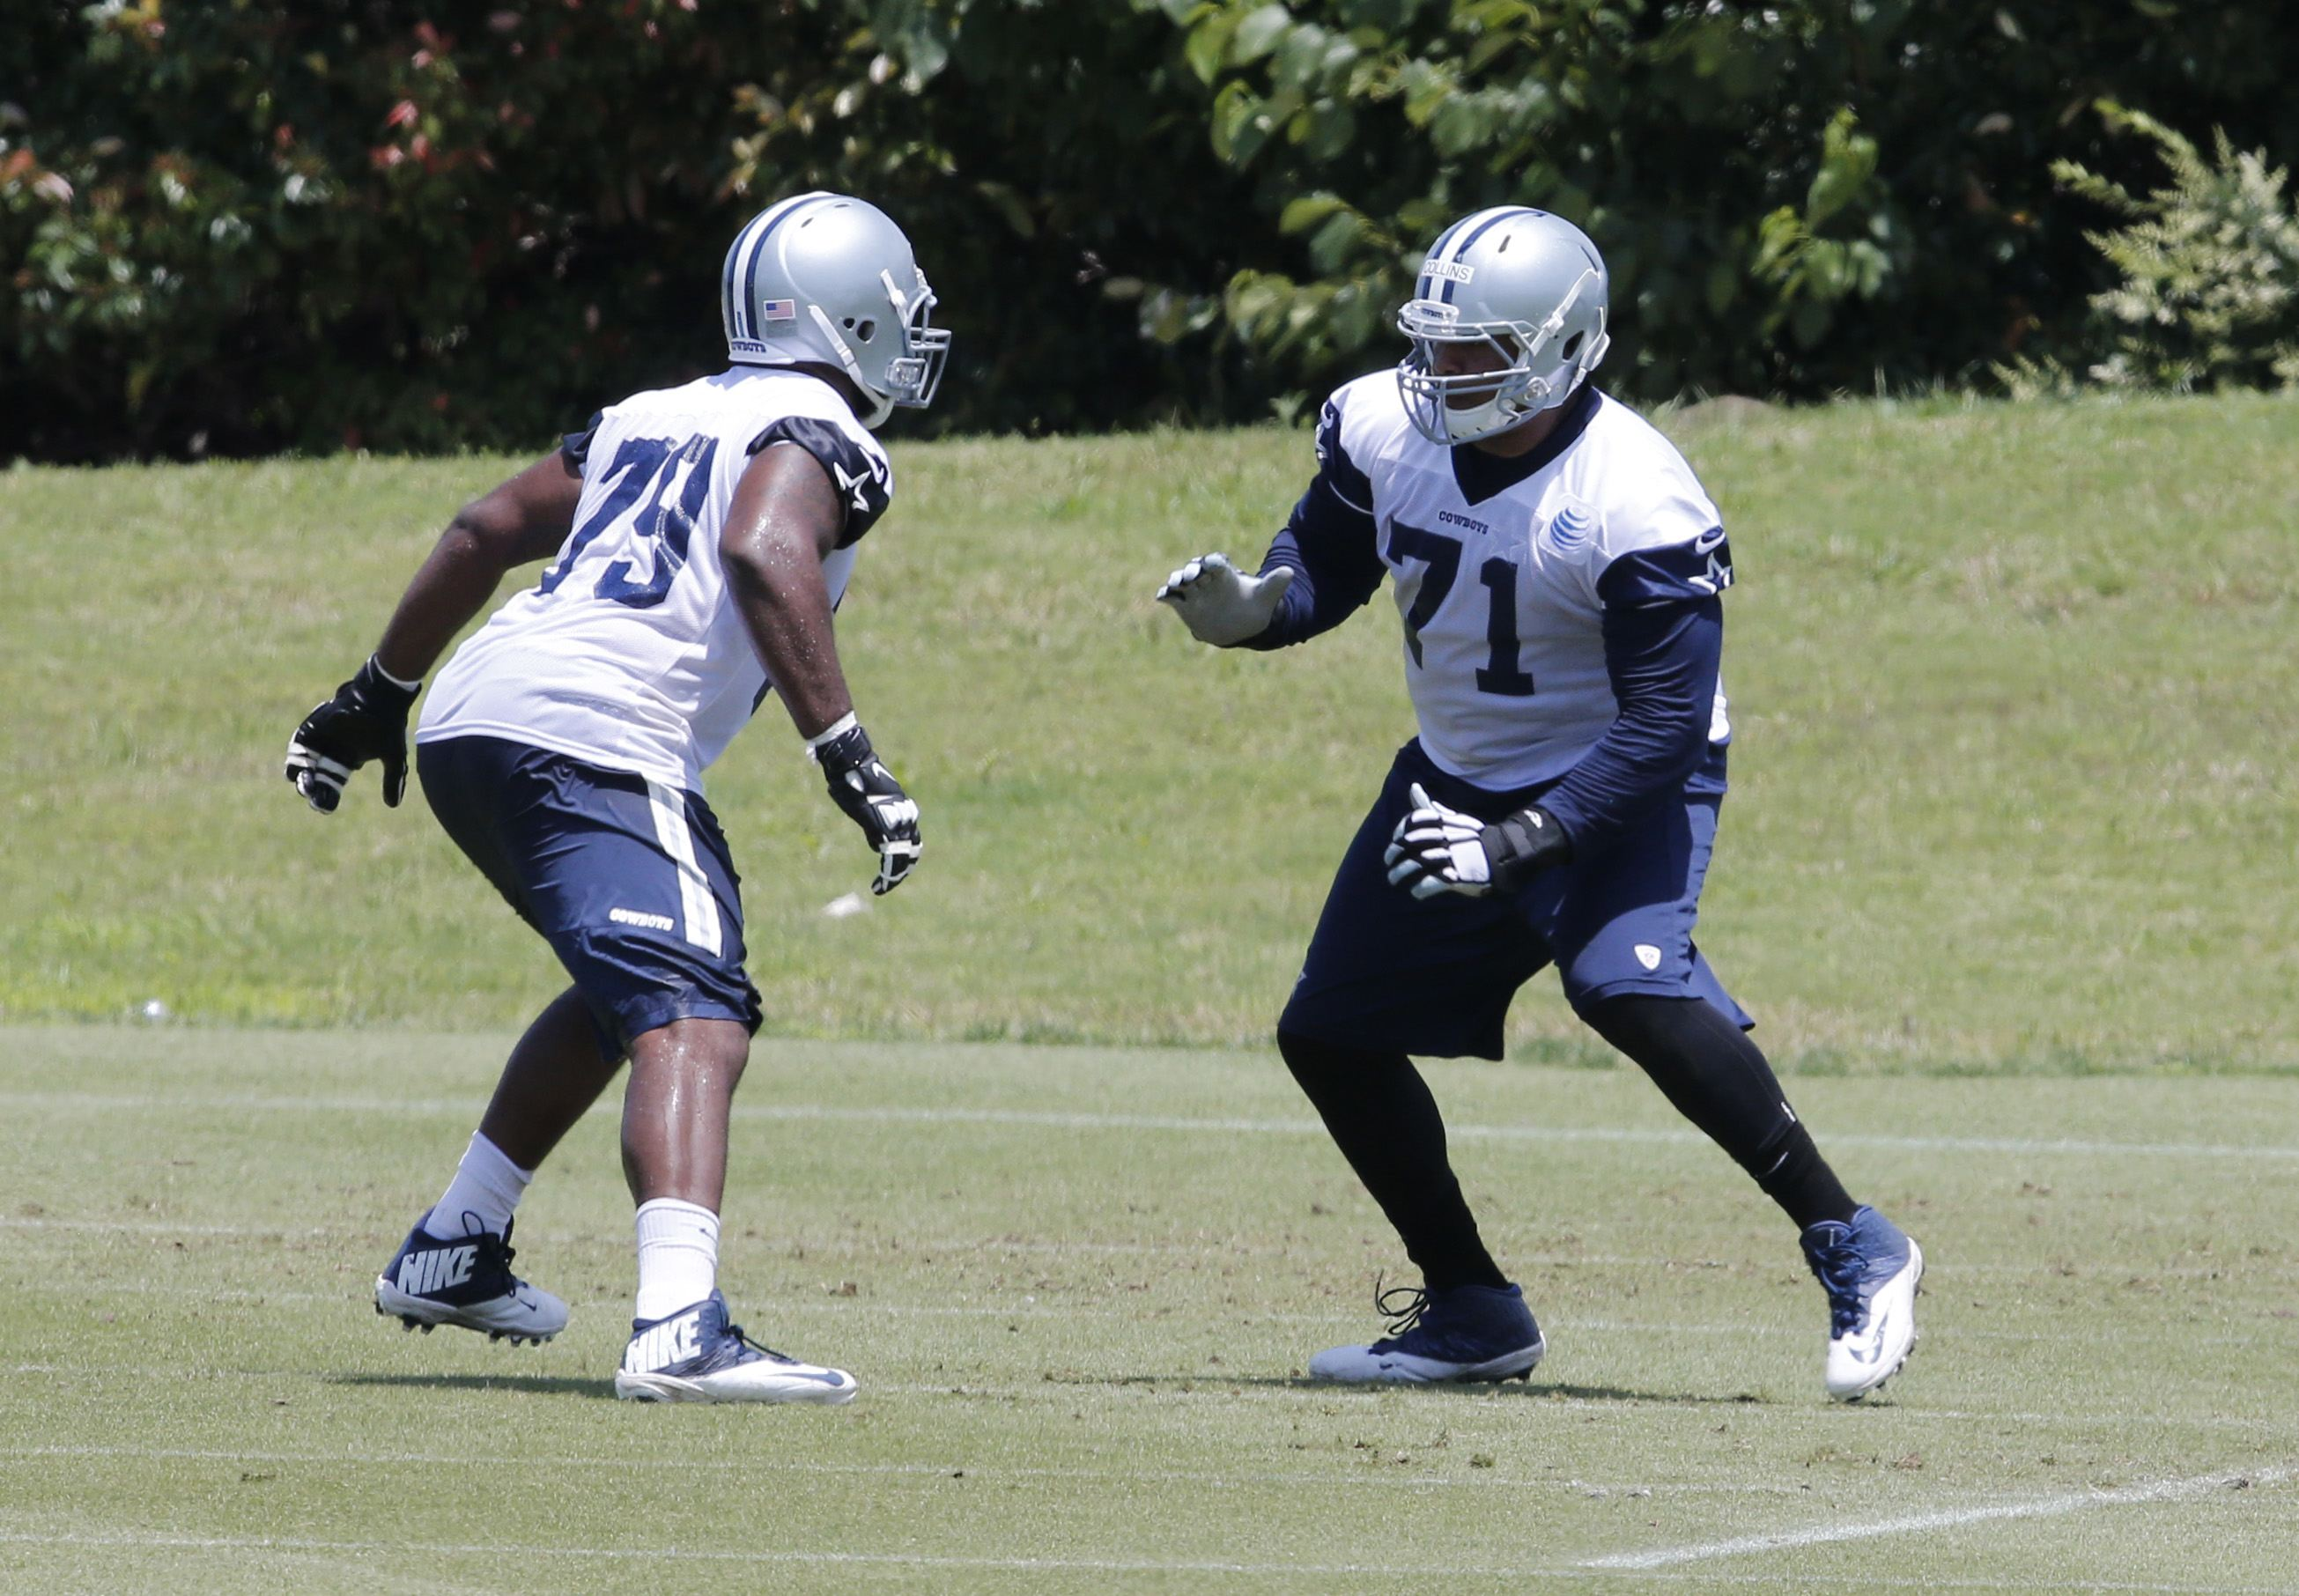 Chaz Green Leaves Practice Again, Cowboys OL Depth Becoming a Concern?